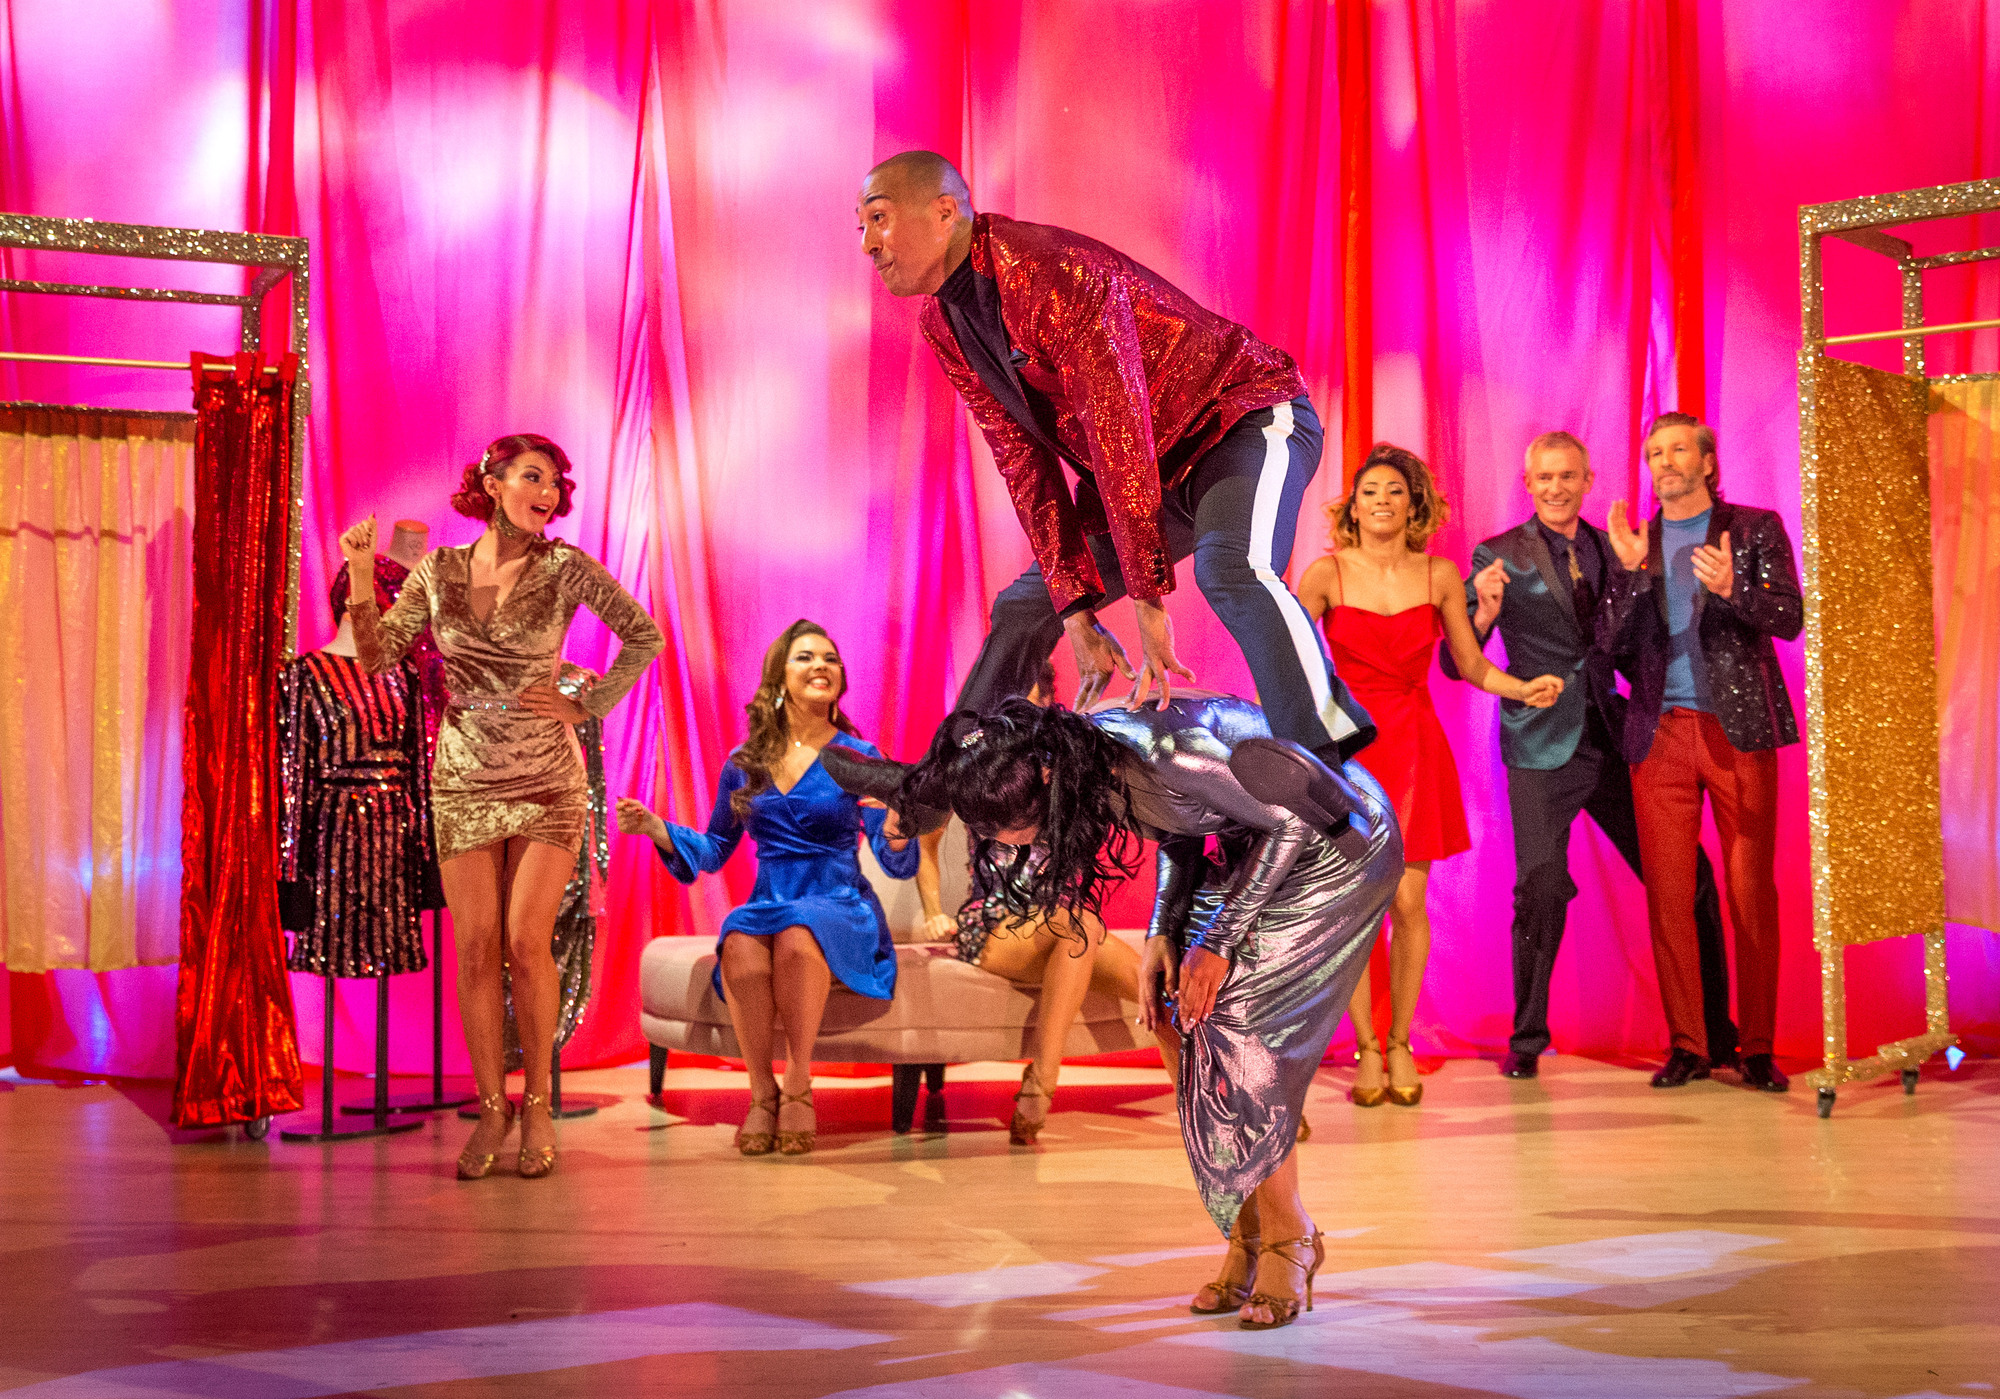 WARNING: Embargoed for publication until 00:00:01 on 09/12/2017 - Programme Name: Strictly Come Dancing Christmas Special 2017 - TX: n/a - Episode: Strictly Come Dancing Christmas Special 2017 (No. n/a) - Picture Shows: *STRICTLY NOT FOR PUBLICATION UNTIL 00:01HRS, SATURDAY 9TH DECEMBER, 2017* Celebrity and pro dancers - (C) BBC - Photographer: Guy Levy (BBC, TL)